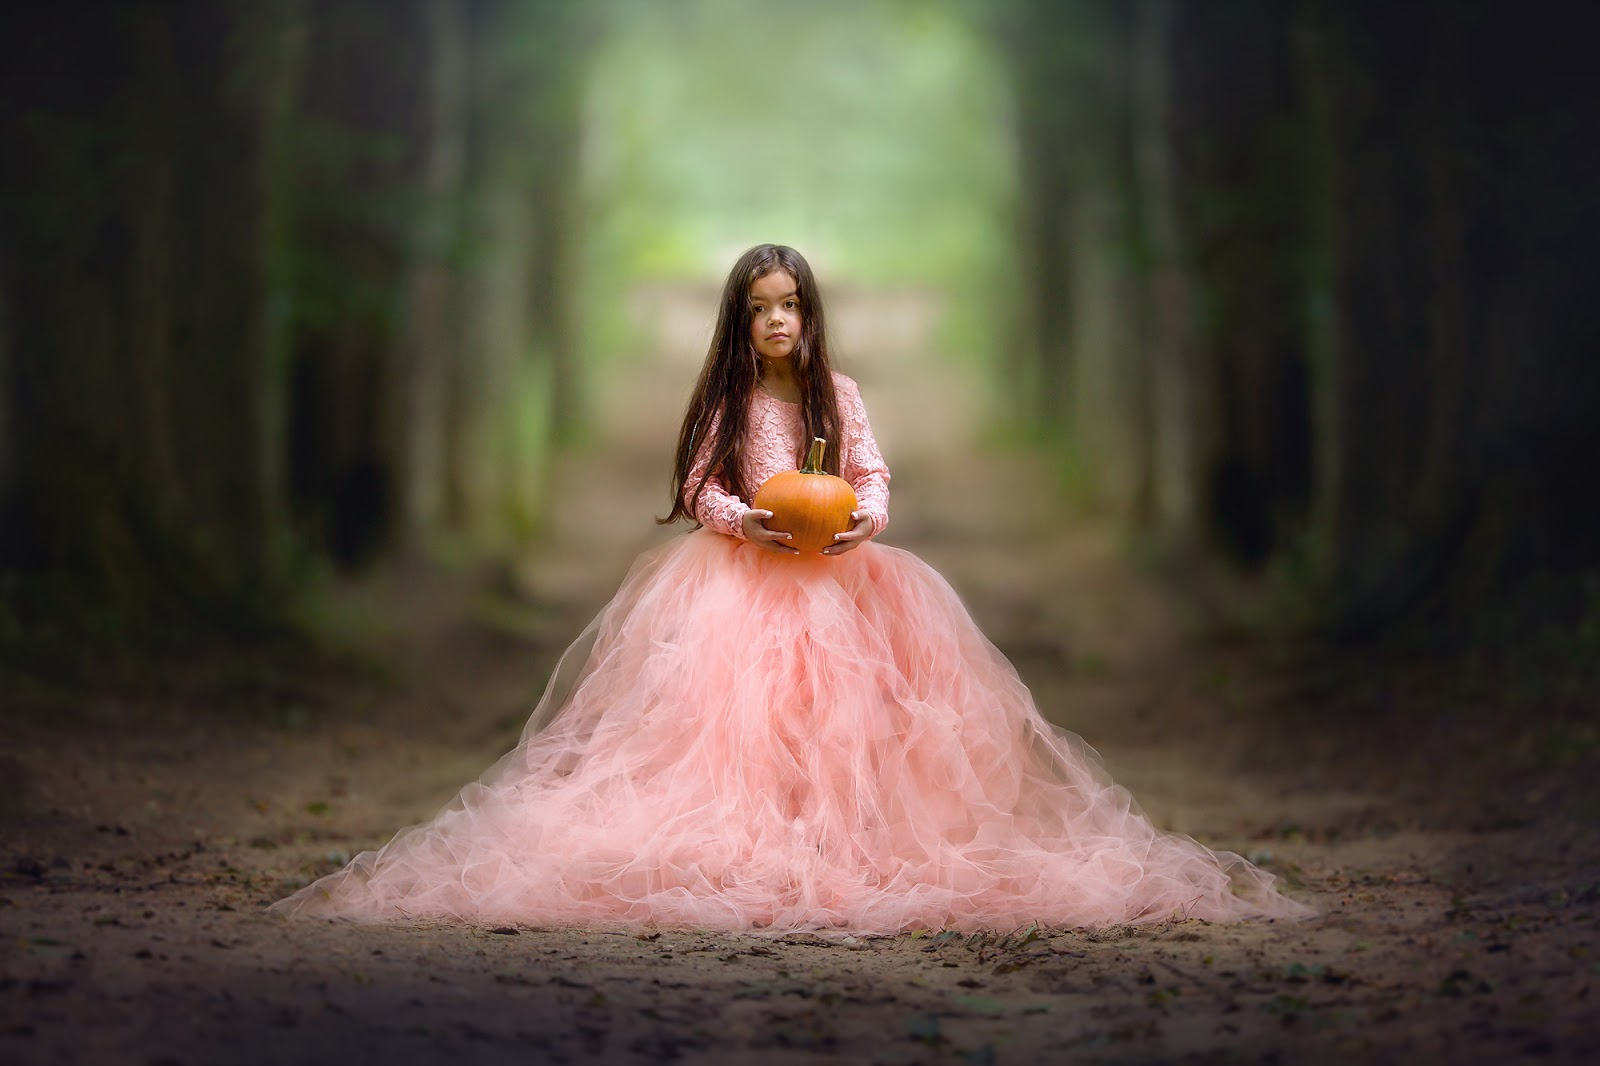 Canon portrait of a young girl in a beautiful red dress standing in an autumn forest with a pumpkin in her hands by Willie Kers